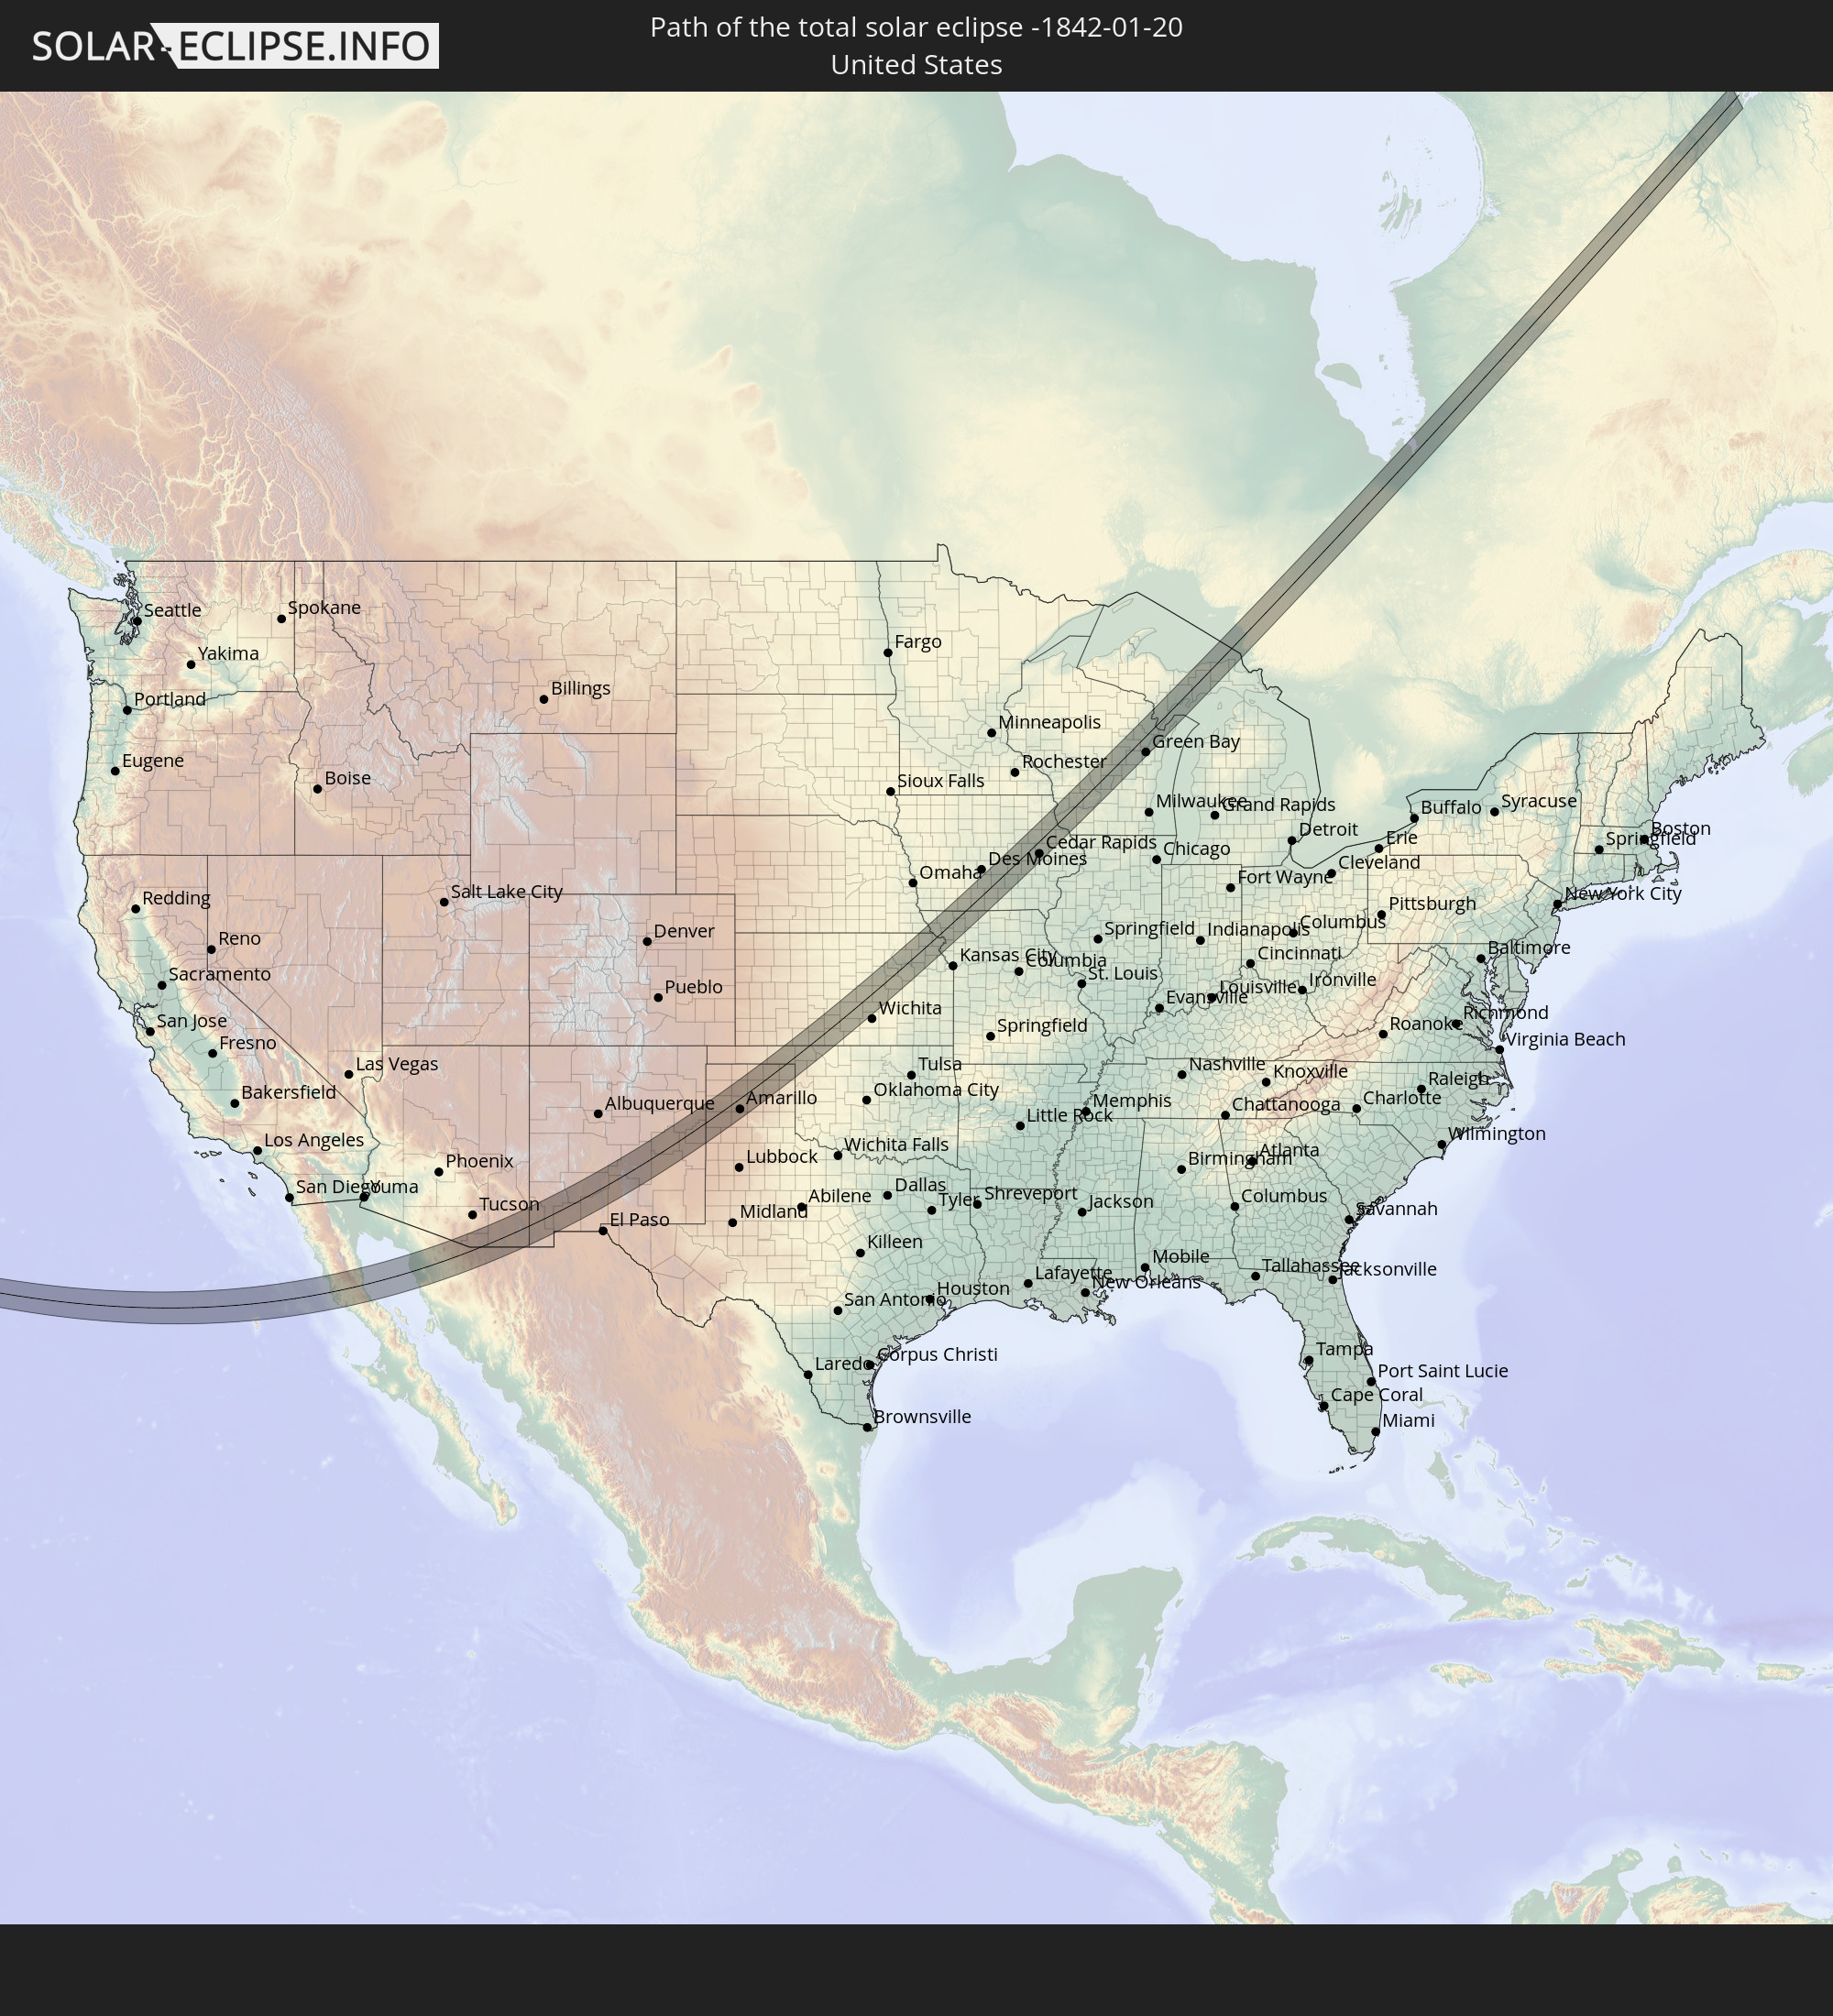 The total solar eclipse of 01/20/-1842